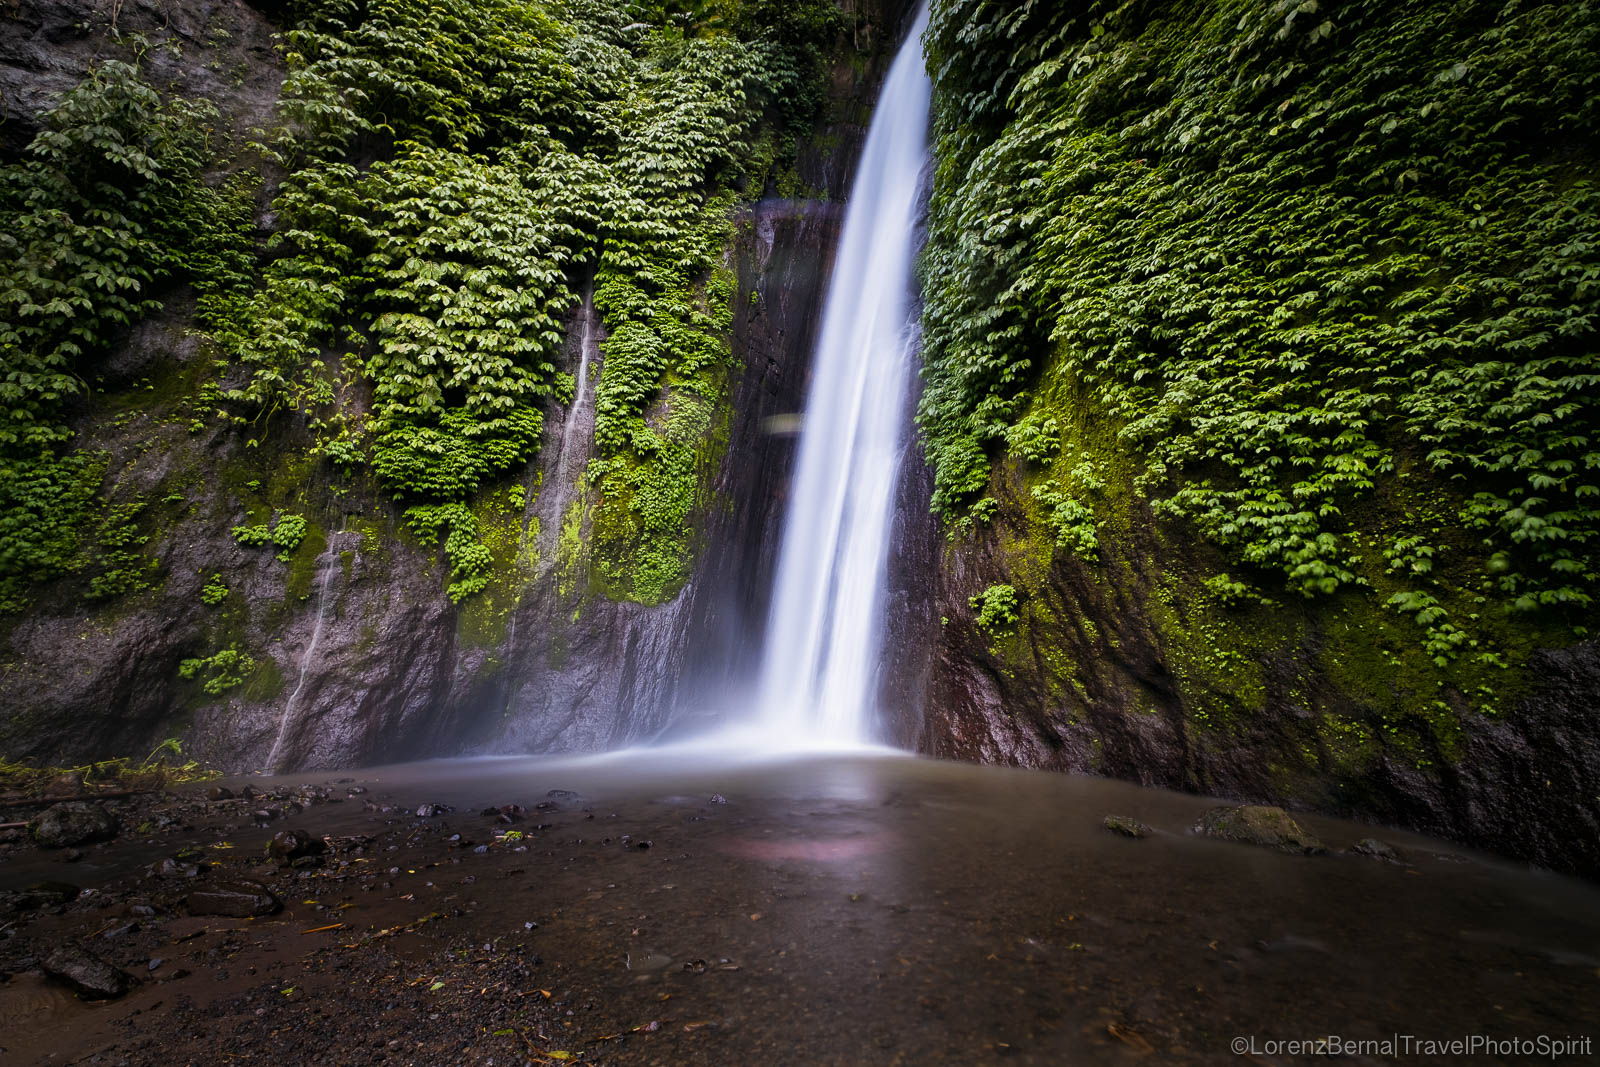 Gitgit waterfall in Munduk, Bali, Indonesia.